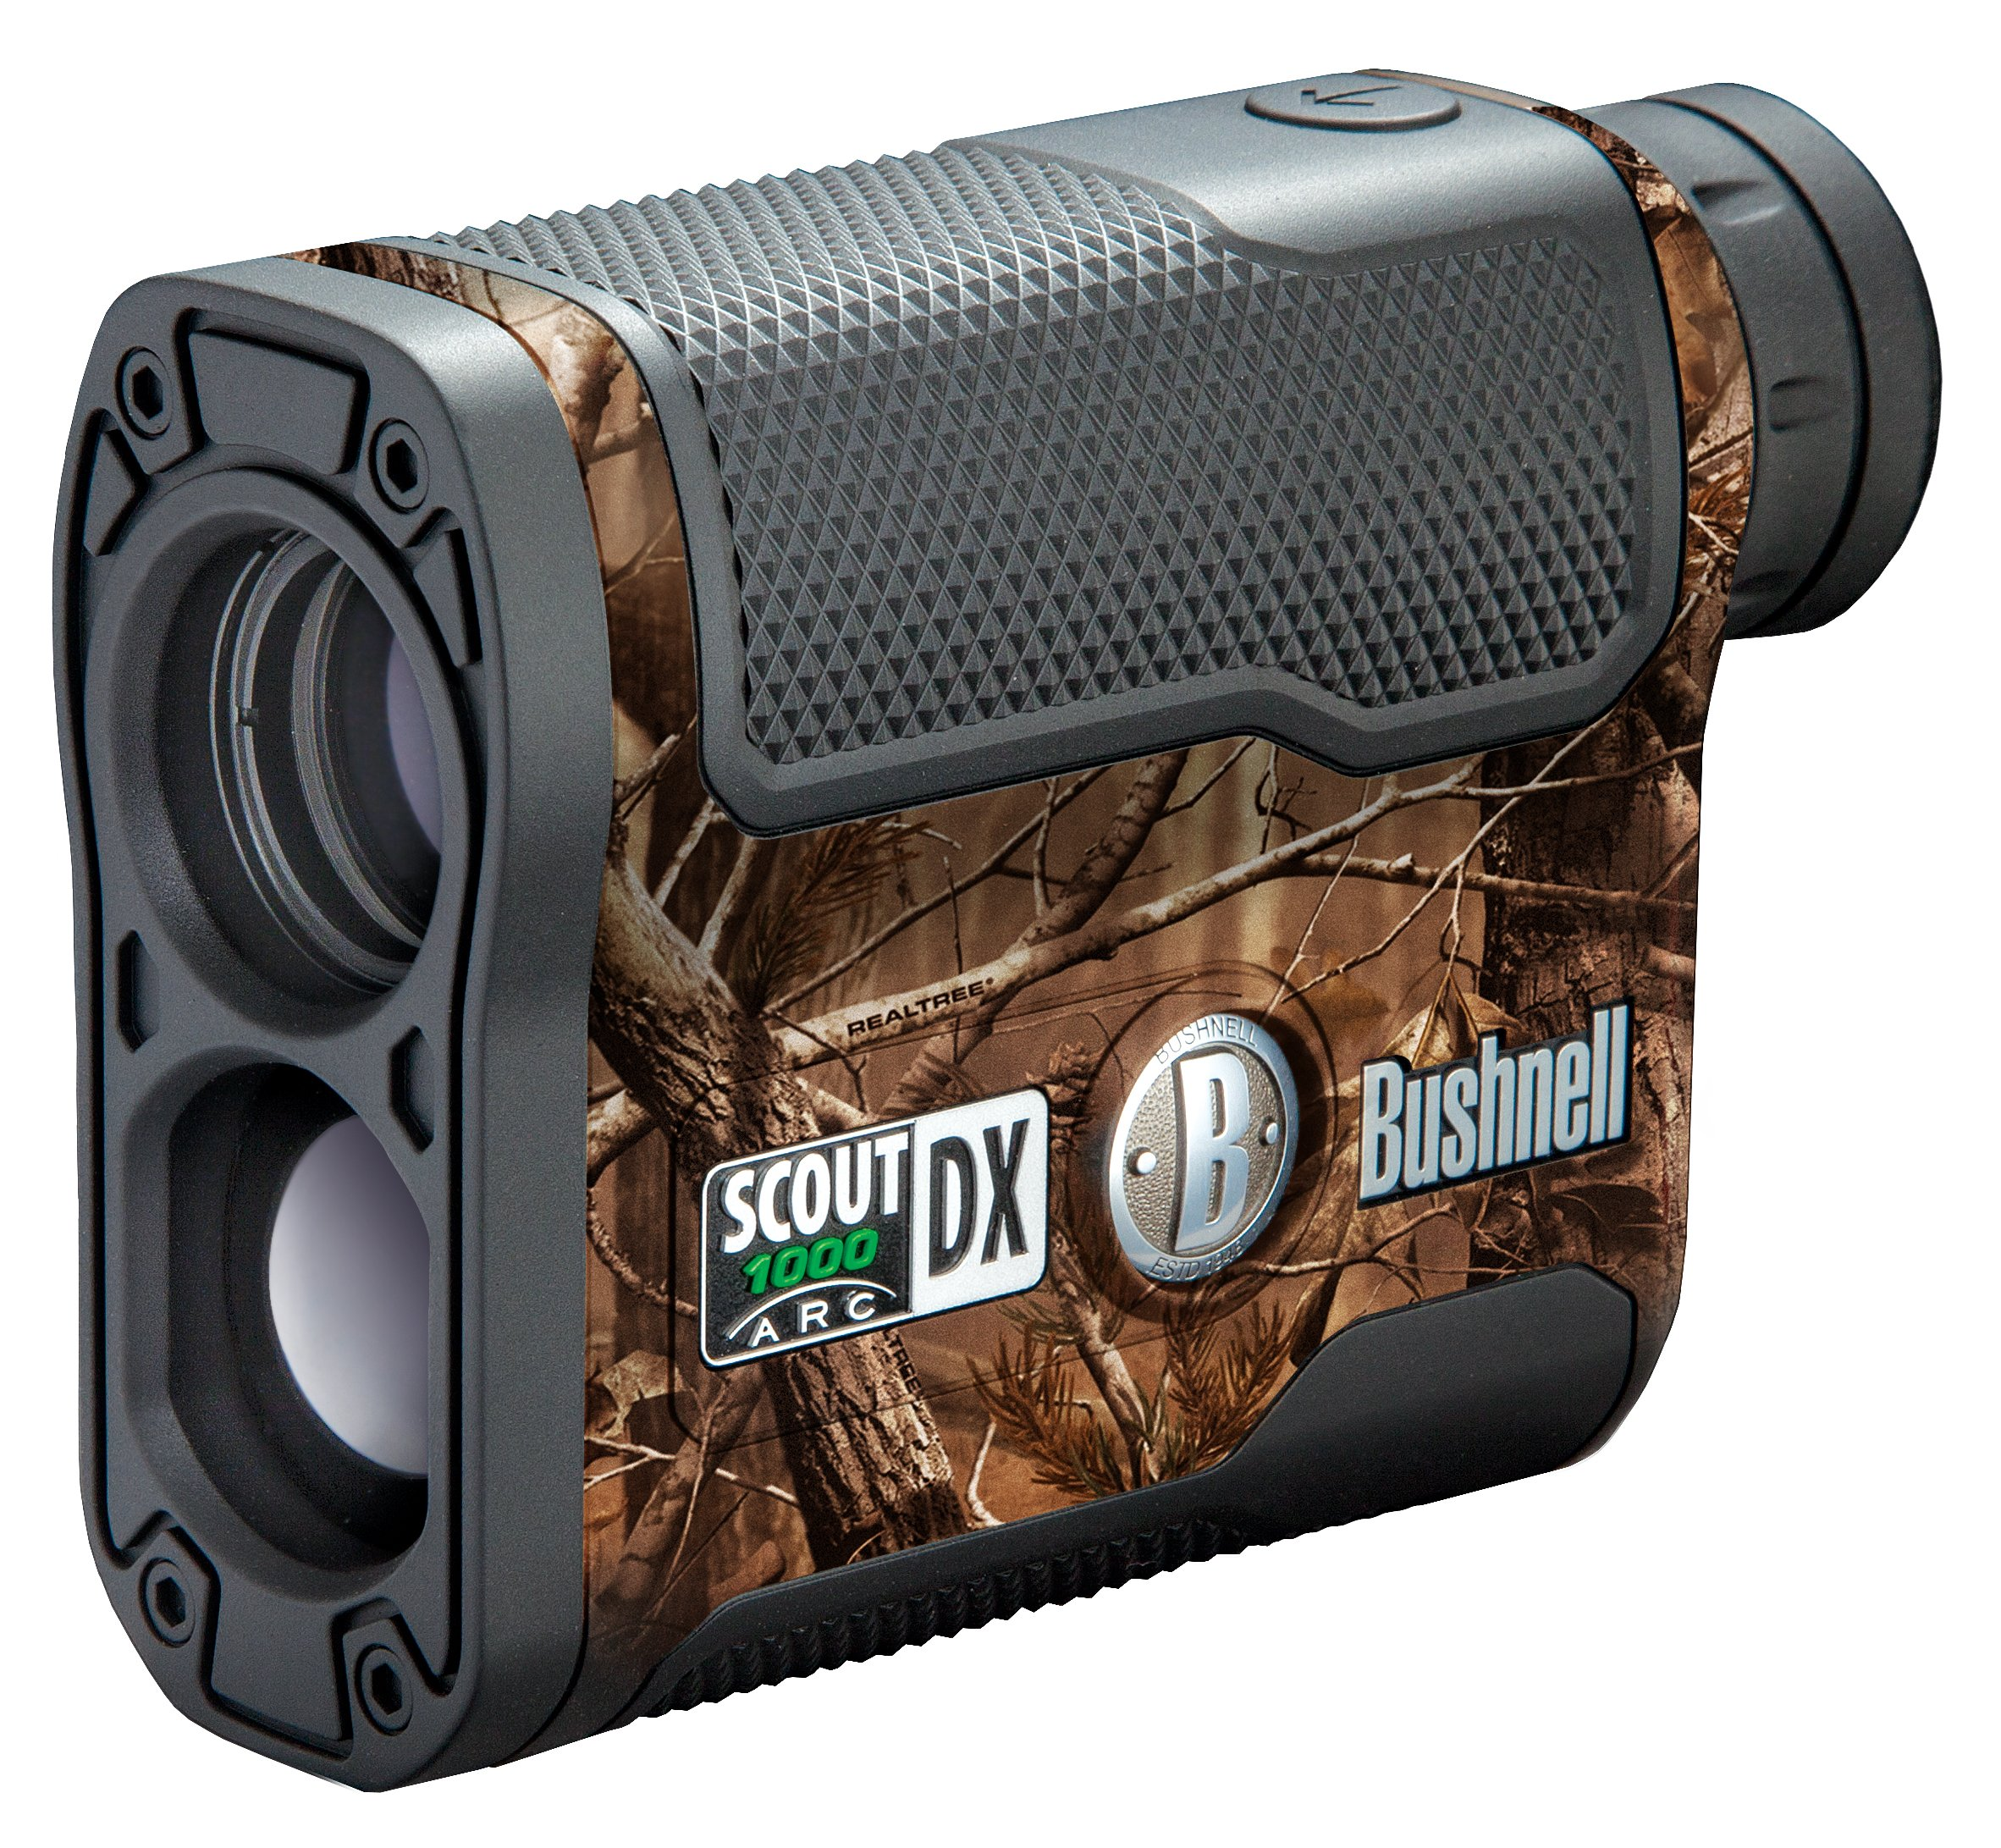 Bushnell Hunting Laser Rangefinders 202356 6X21 Scout Dx 1000 Rtxtra Box